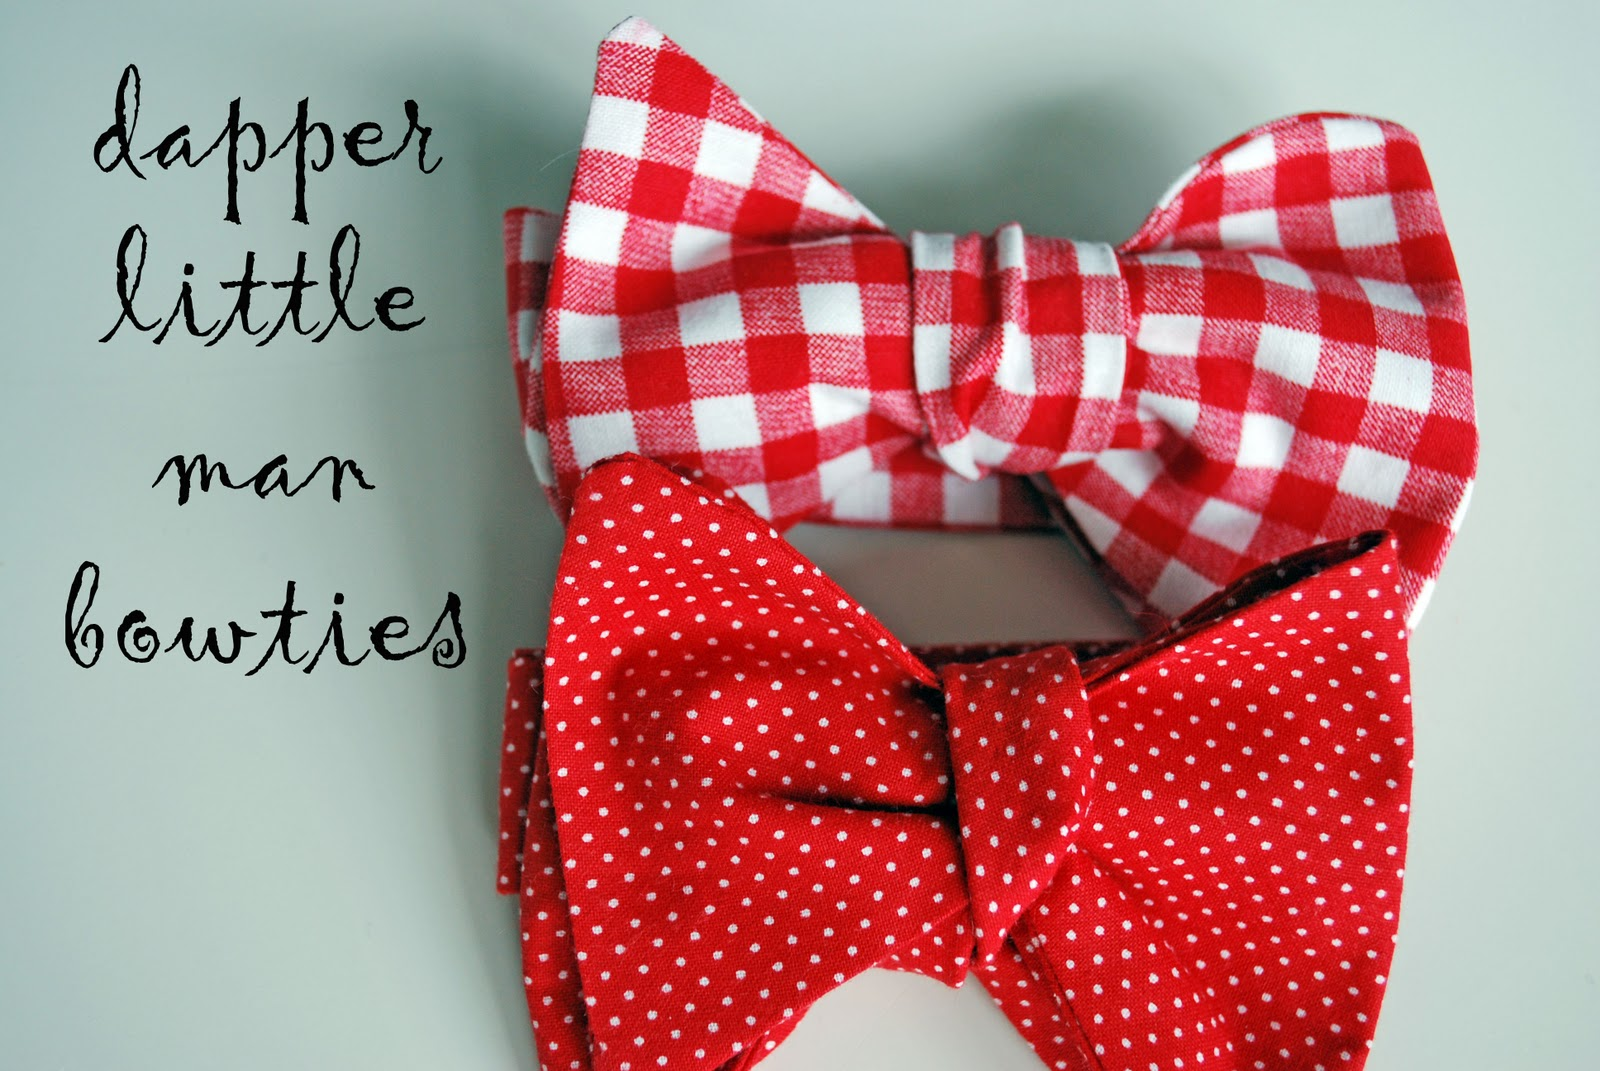 Larissa Another Day Dapper Little Man Bow Tie Tutorial Tying Diagram Every Proper Young Should Have His Own This One Is A Legit For Real Actual The Piece Of Elastic In Back Makes It